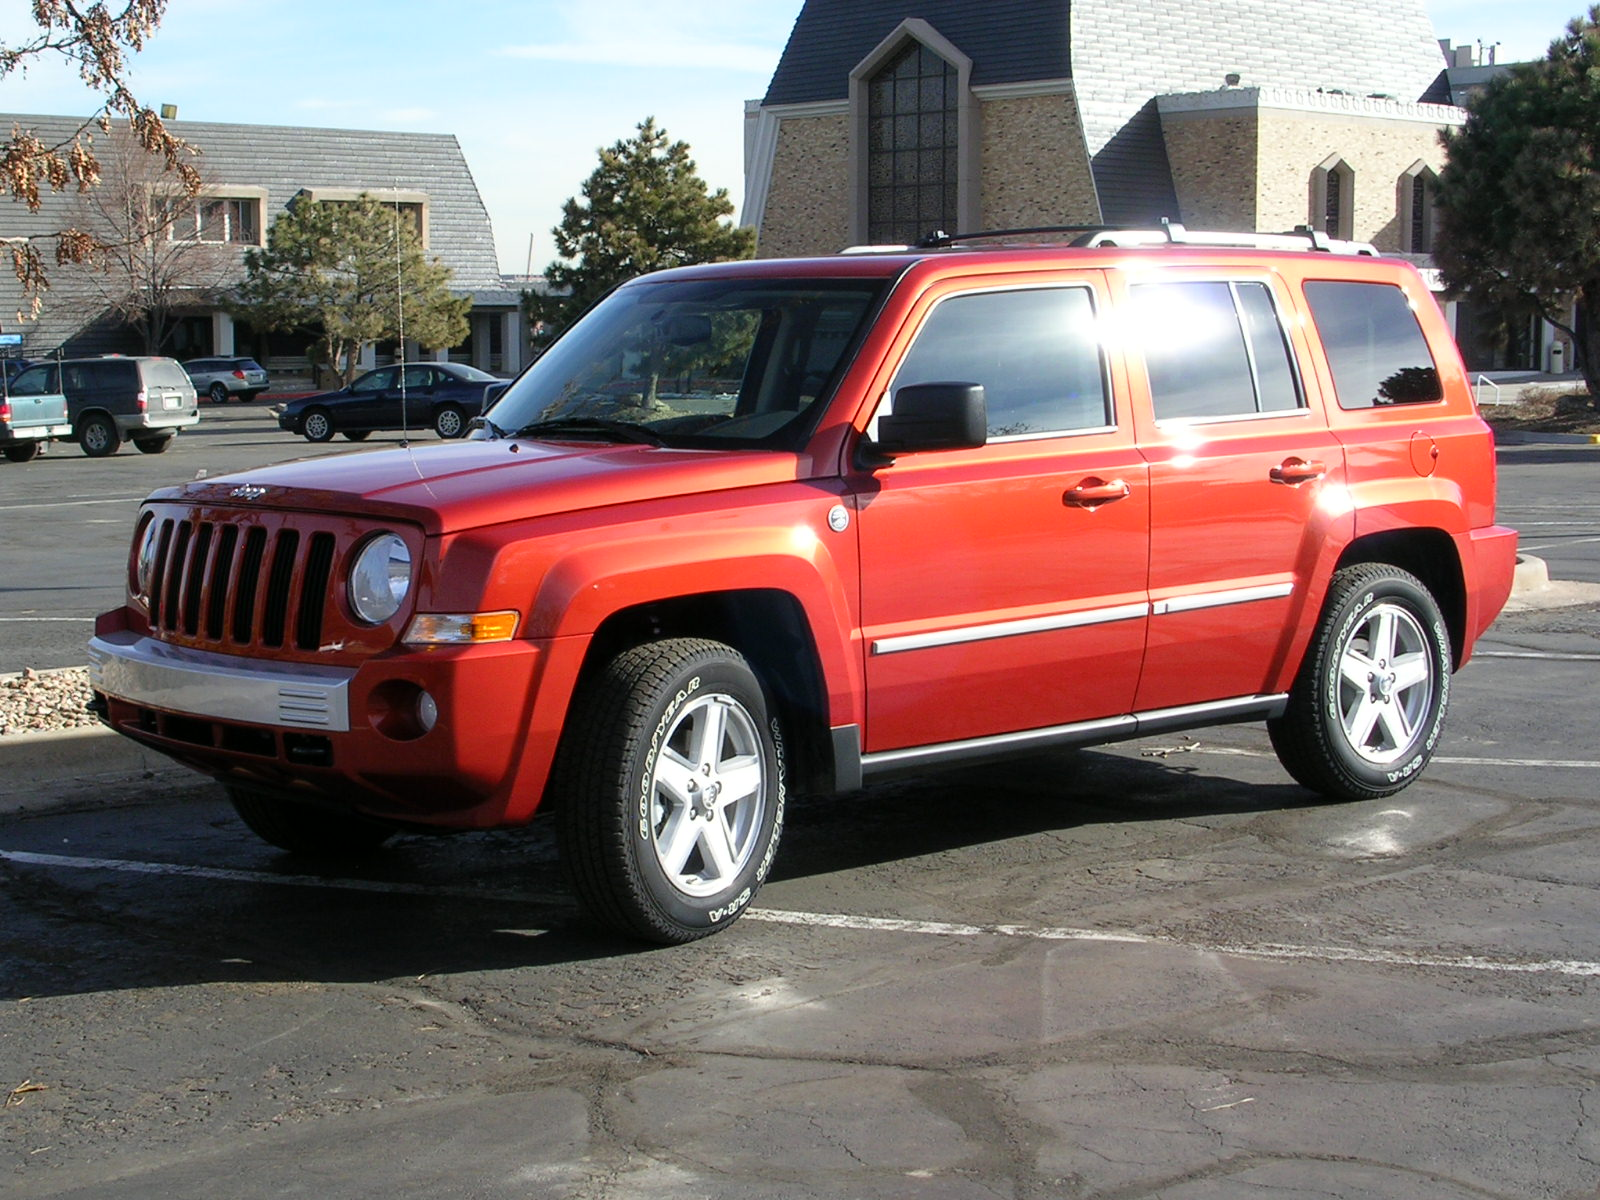 2010 jeep patriot: a true off-road vehicle, fuel effecient and